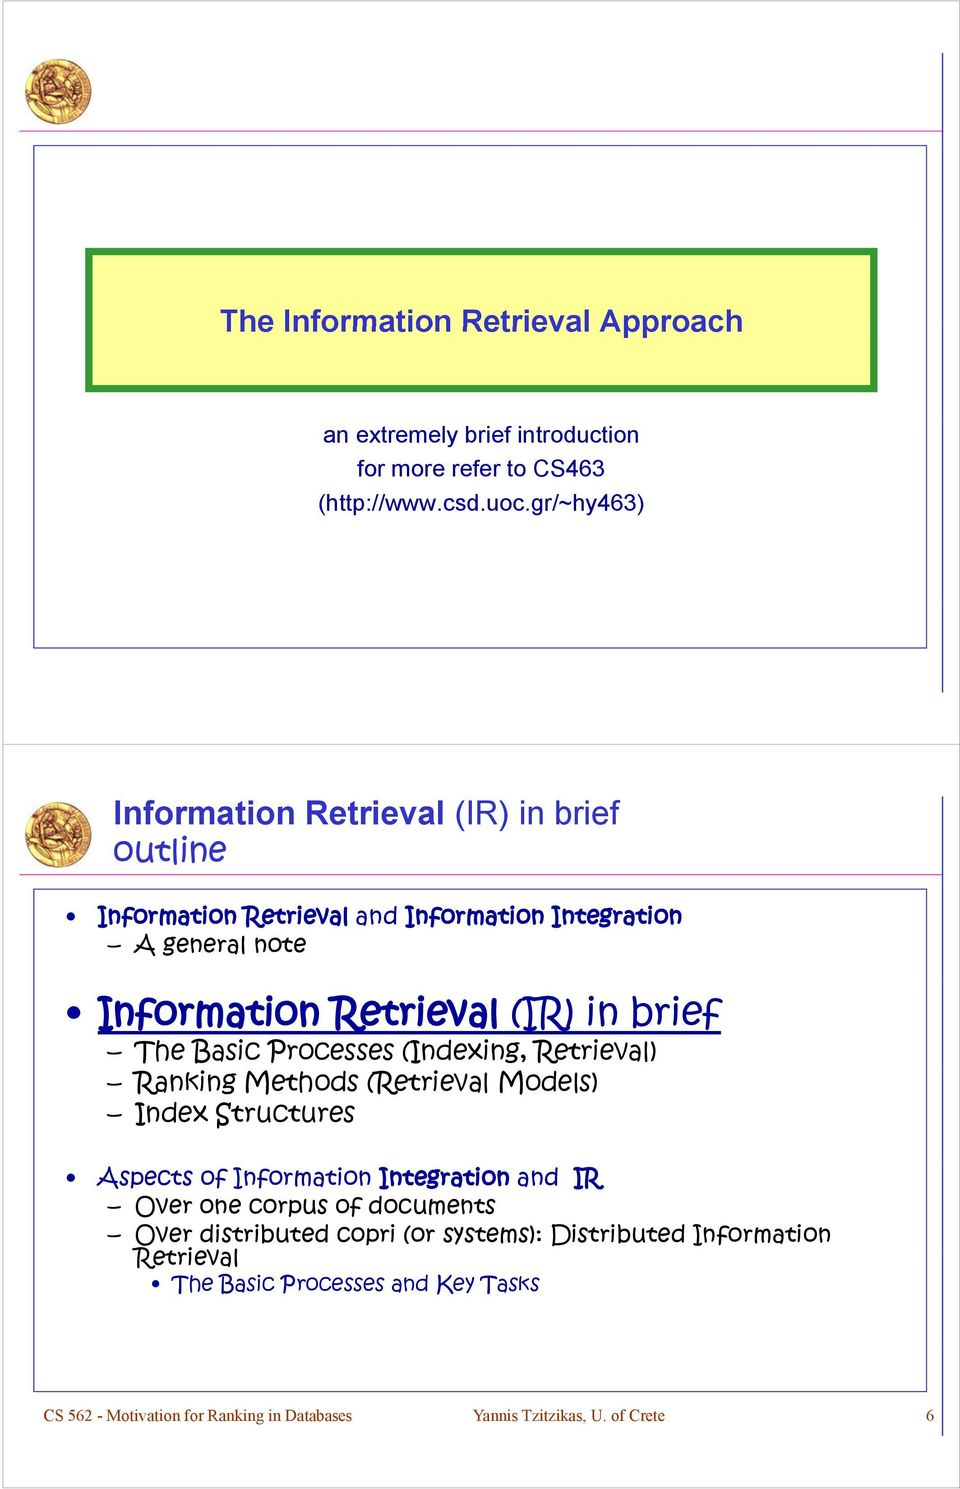 in brief The Basic Processes (Indexing, Retrieval) Ranking Methods (Retrieval Models) Index Structures Aspects of Information Integration and IR Over one